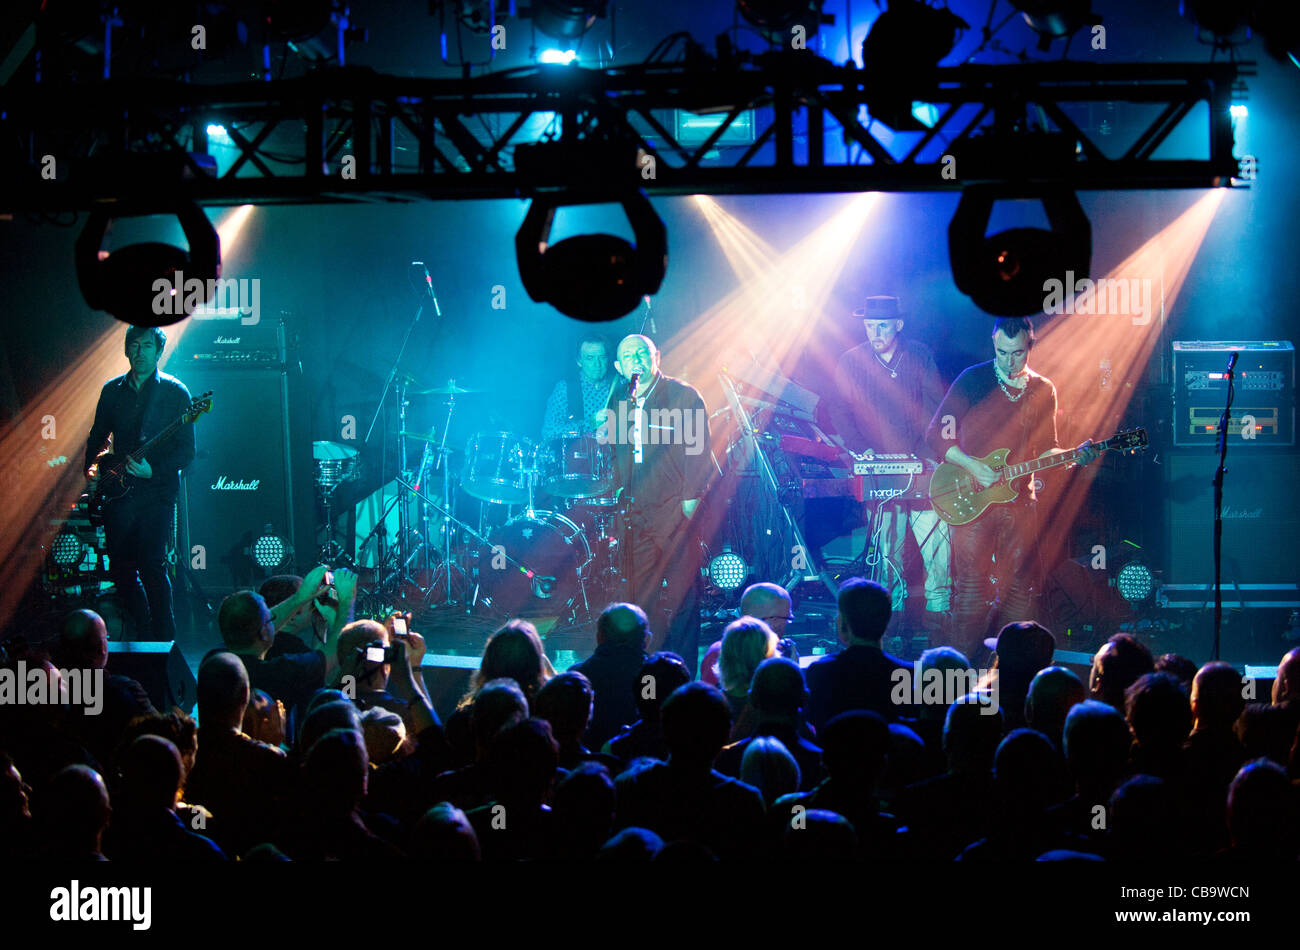 Reunited rock band, Magazine, fronted by singer Howard Devoto at Birmingham HMV Institute, 8th November 2011 - Stock Image